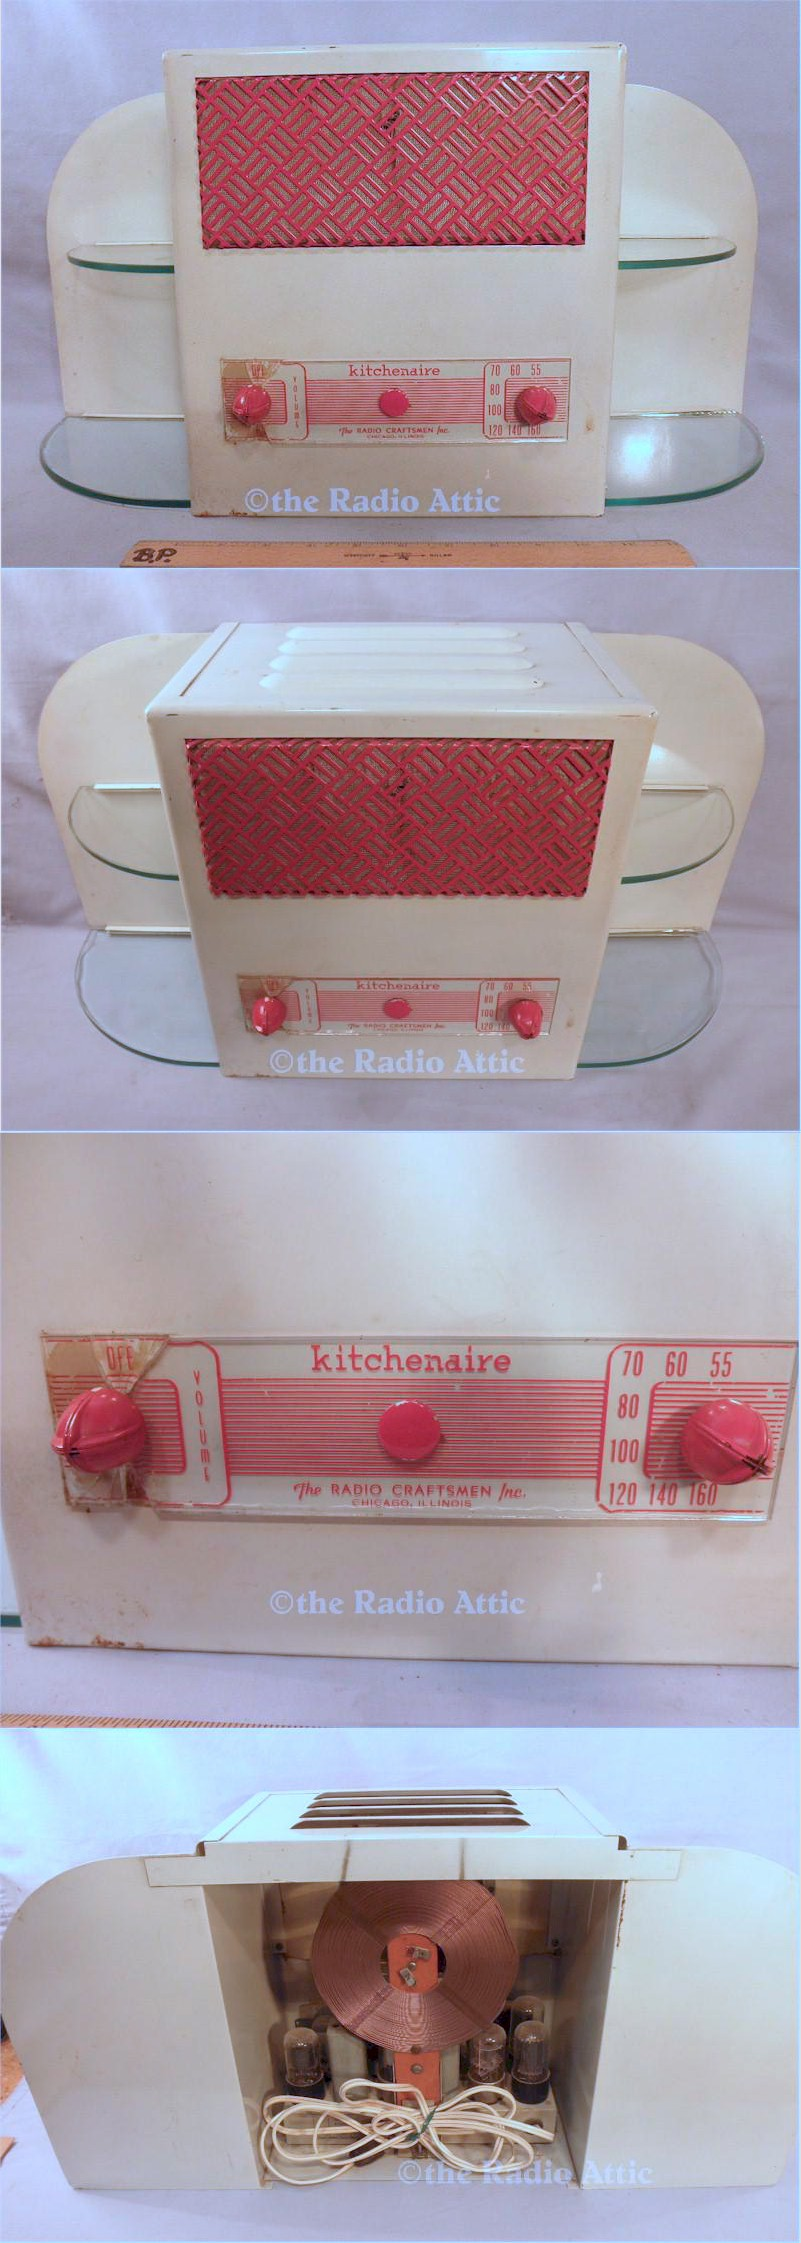 Radio Craftsmen Kitchenaire